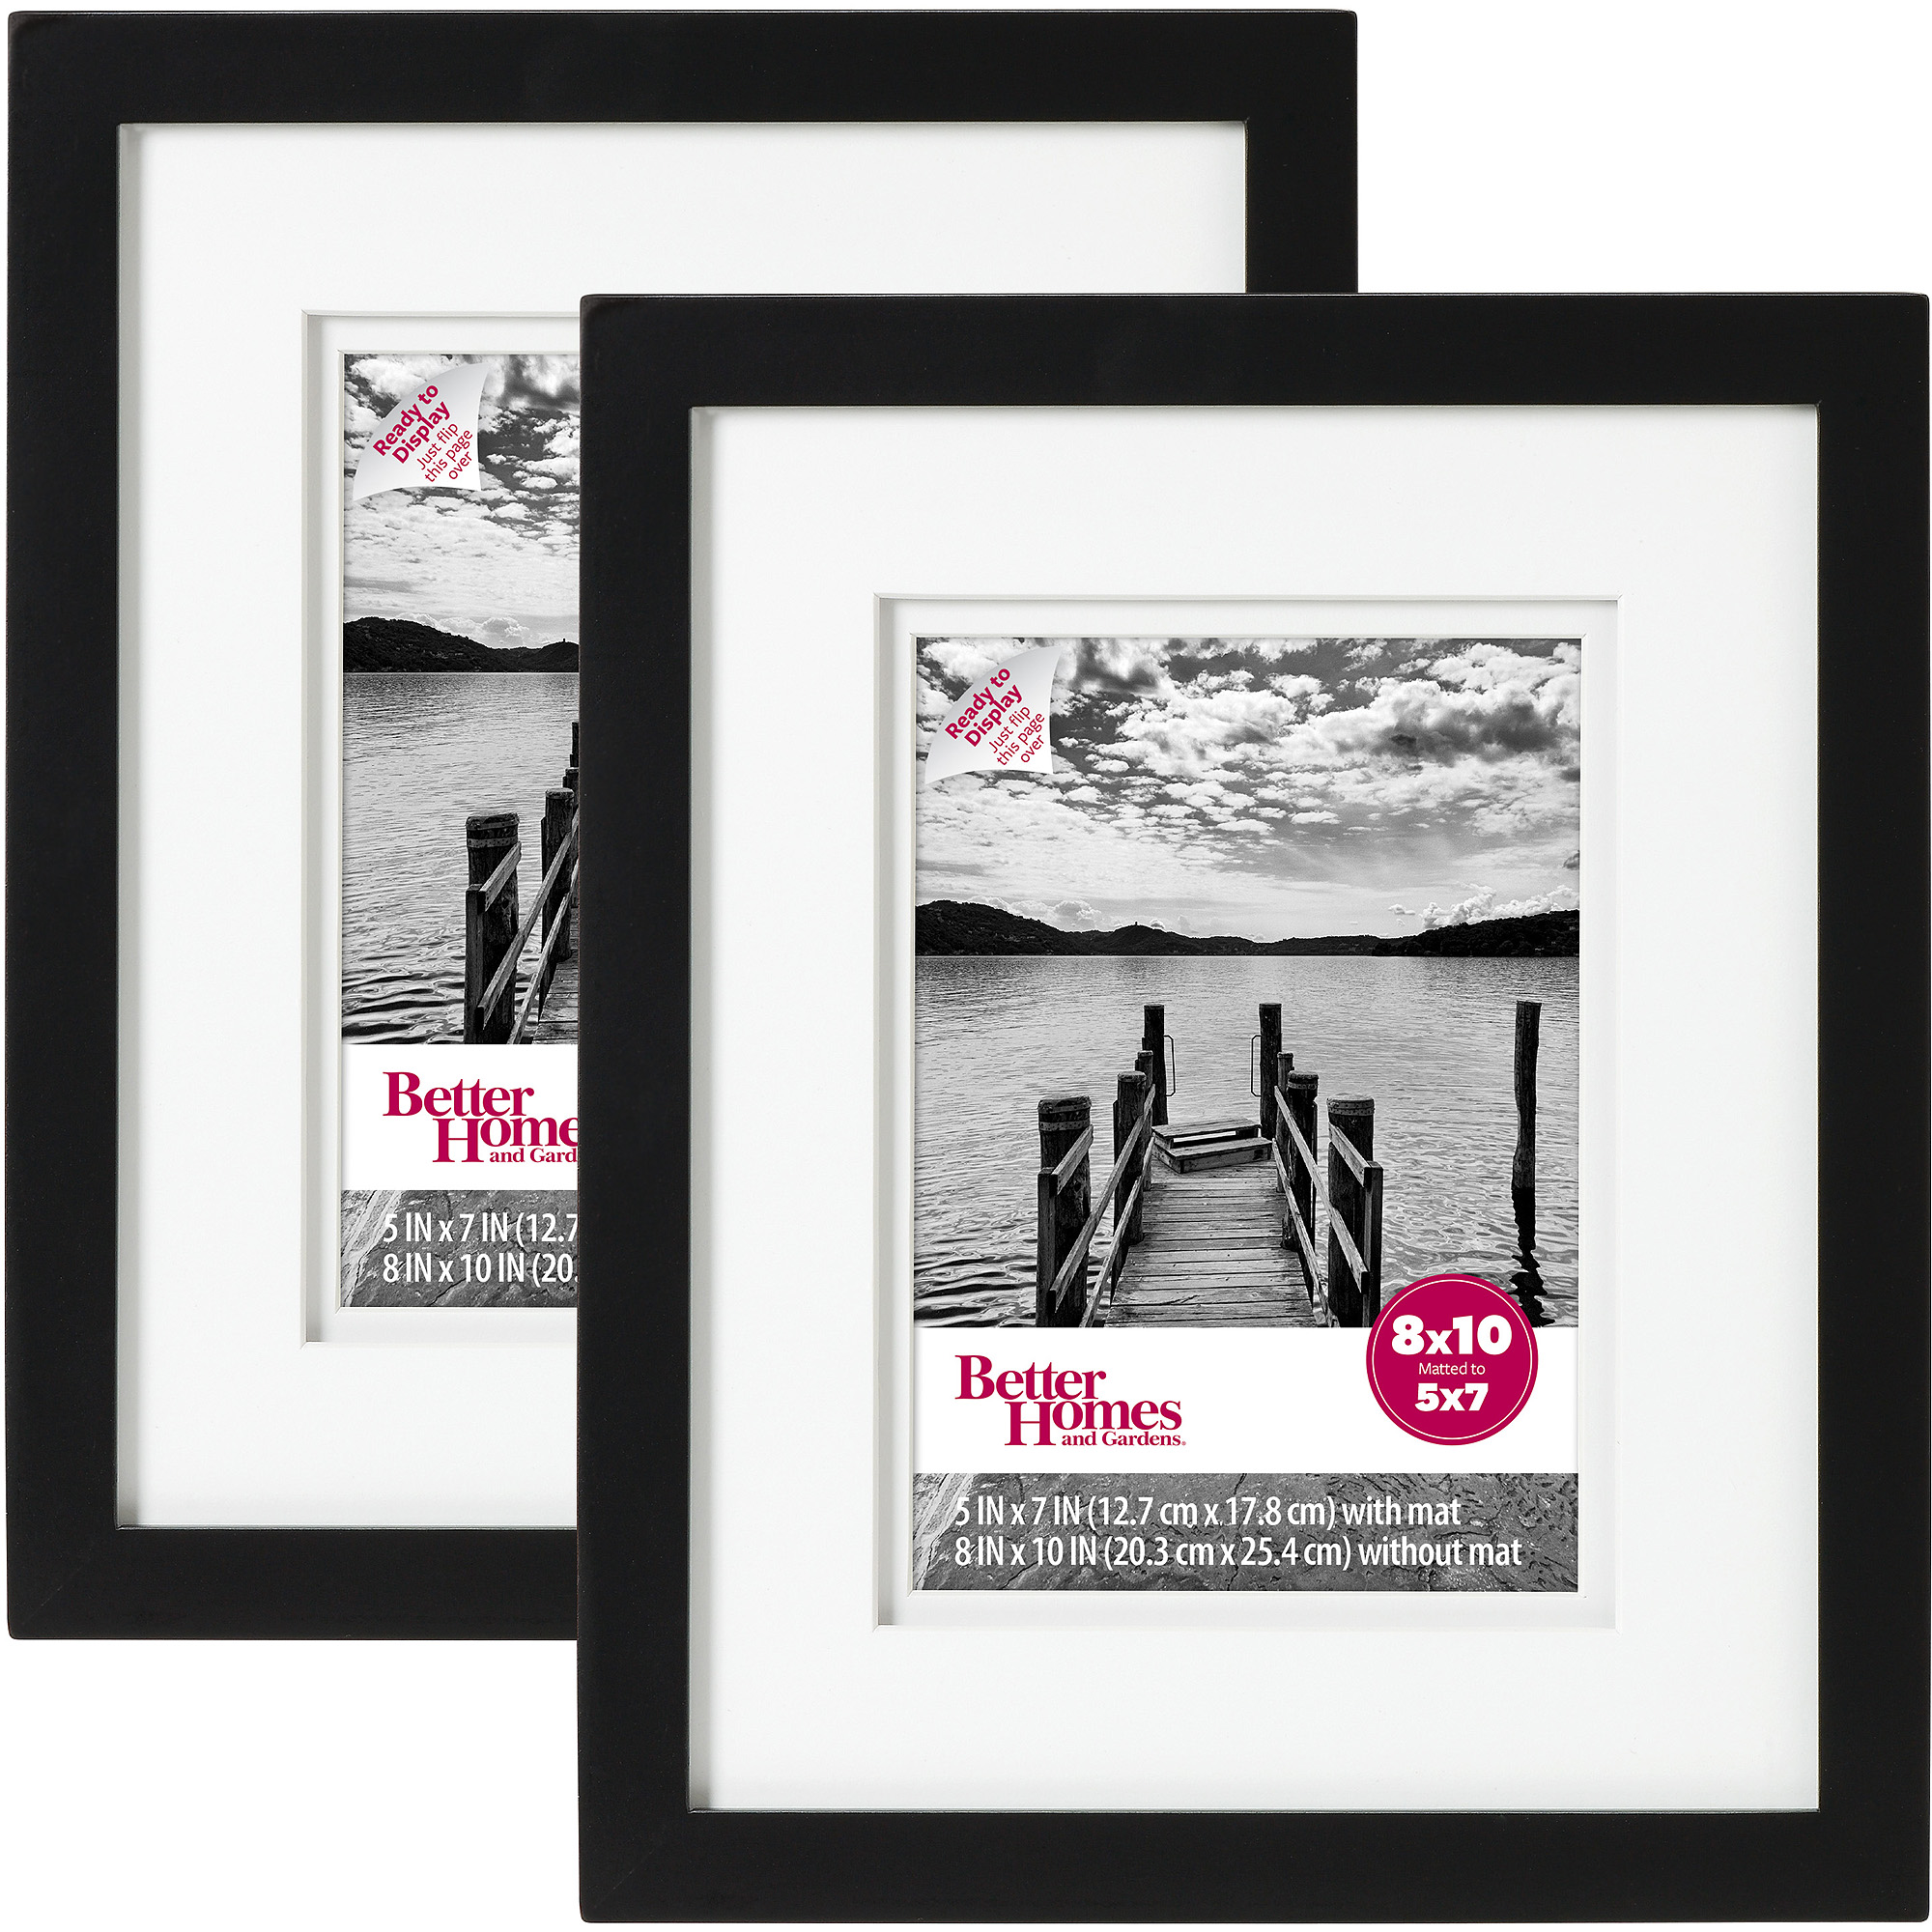 better homes and gardens picture frame black set of 2 8x10 walmartcom